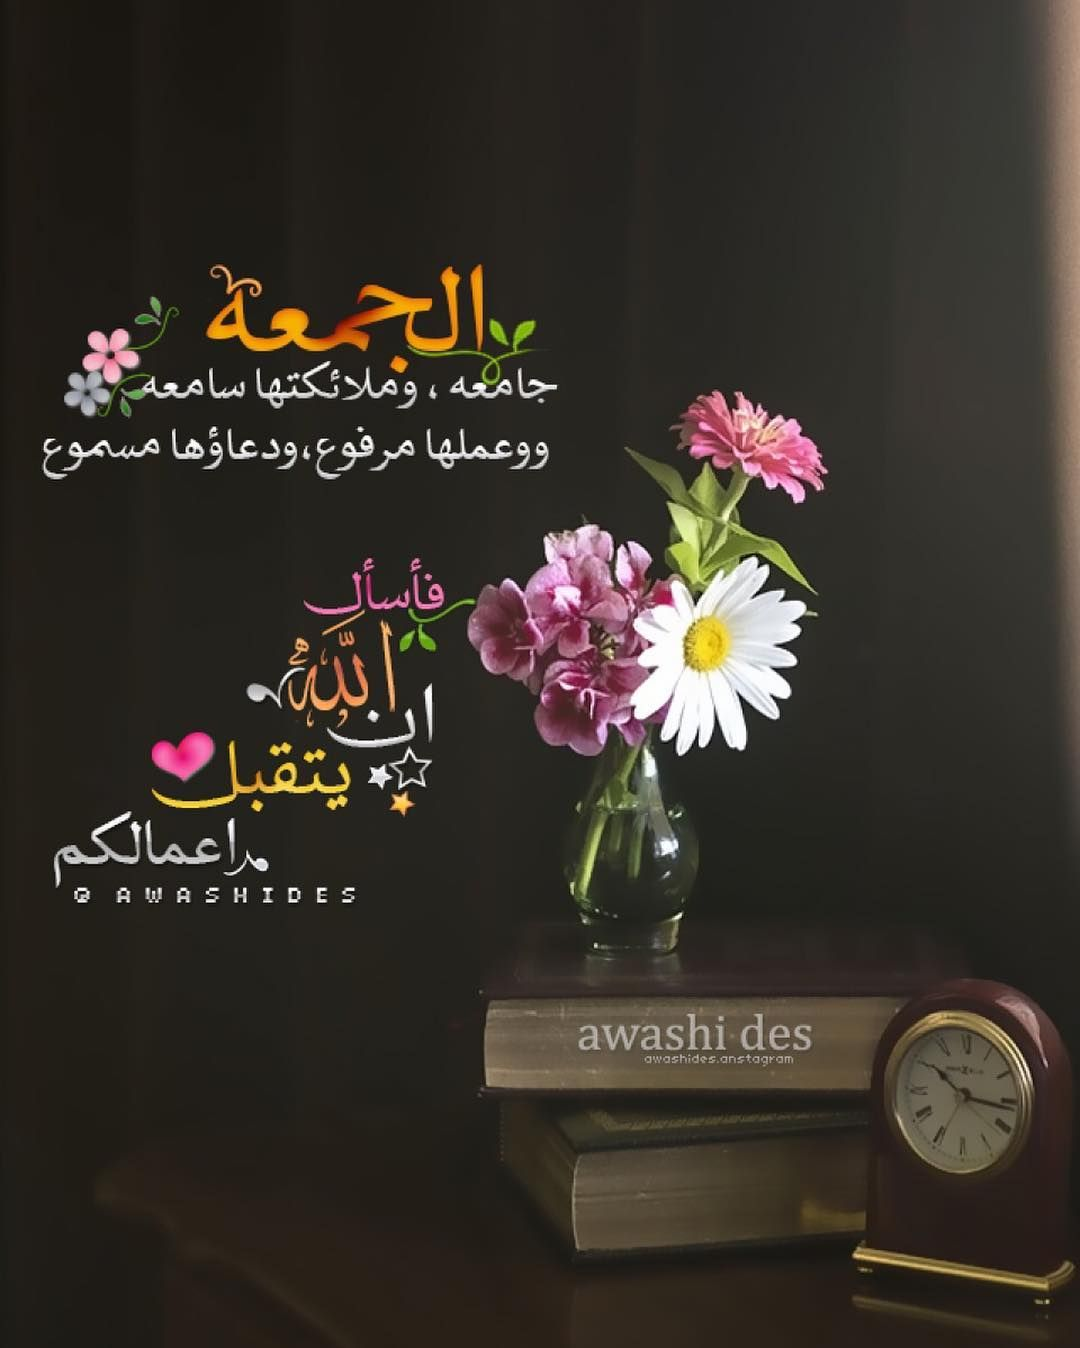 Versions Share C By Rhendy Hostta Thank You For Visiting My Pin In Pinterest Beautiful Morning Messages Good Morning Arabic St Patricks Day Wallpaper